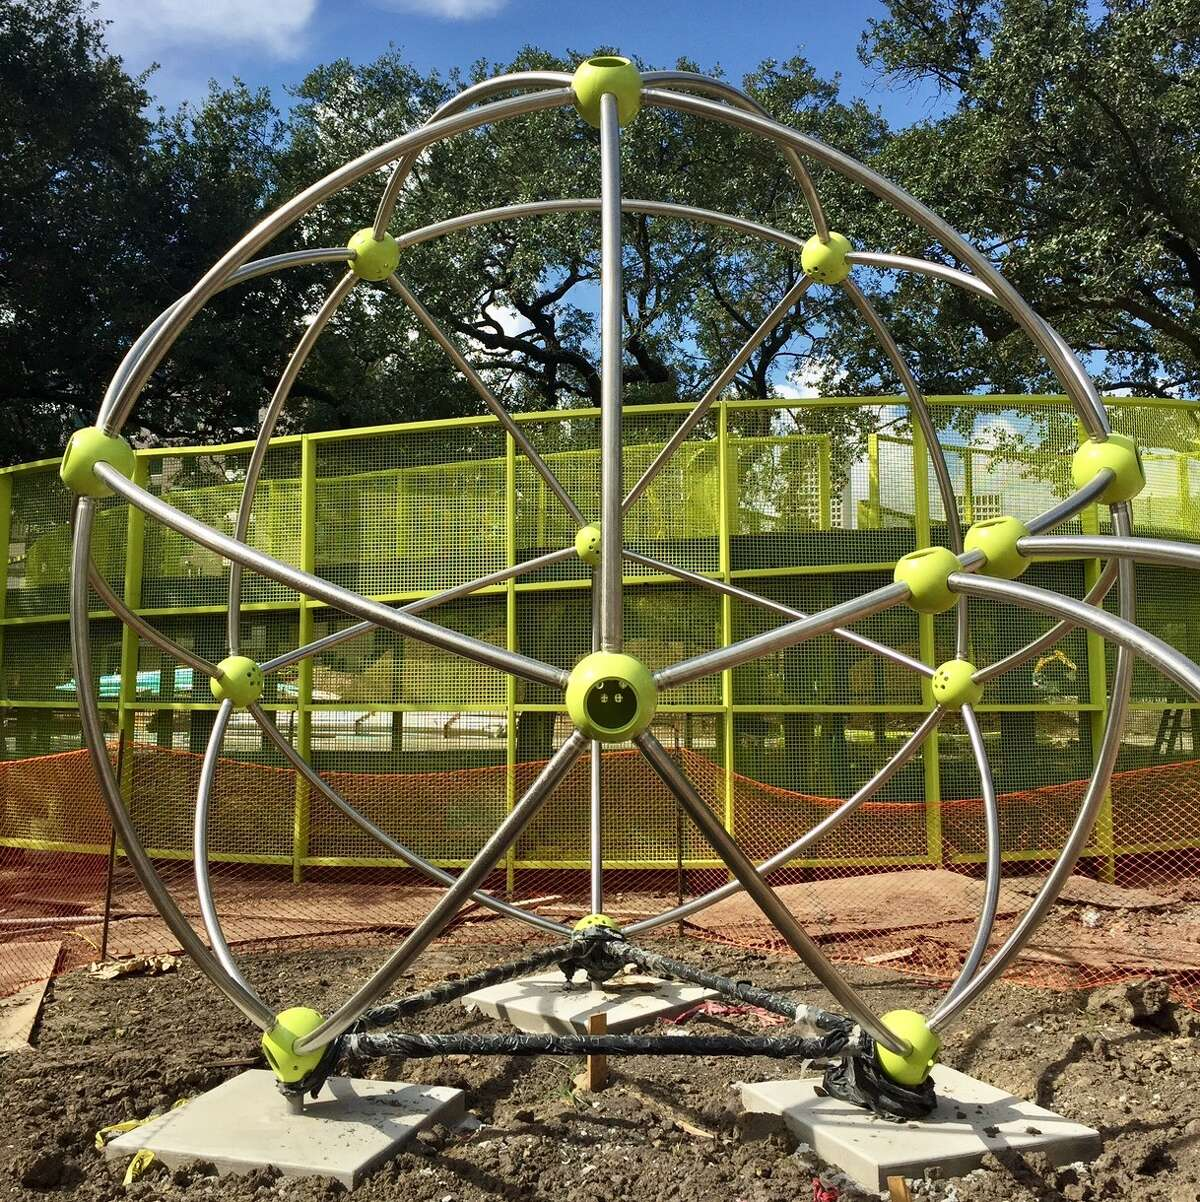 The Cosmo, a 14-foot climbing sphere, is part of the 24,000-square-foot area devoted to kids, families and play in Levy Park.